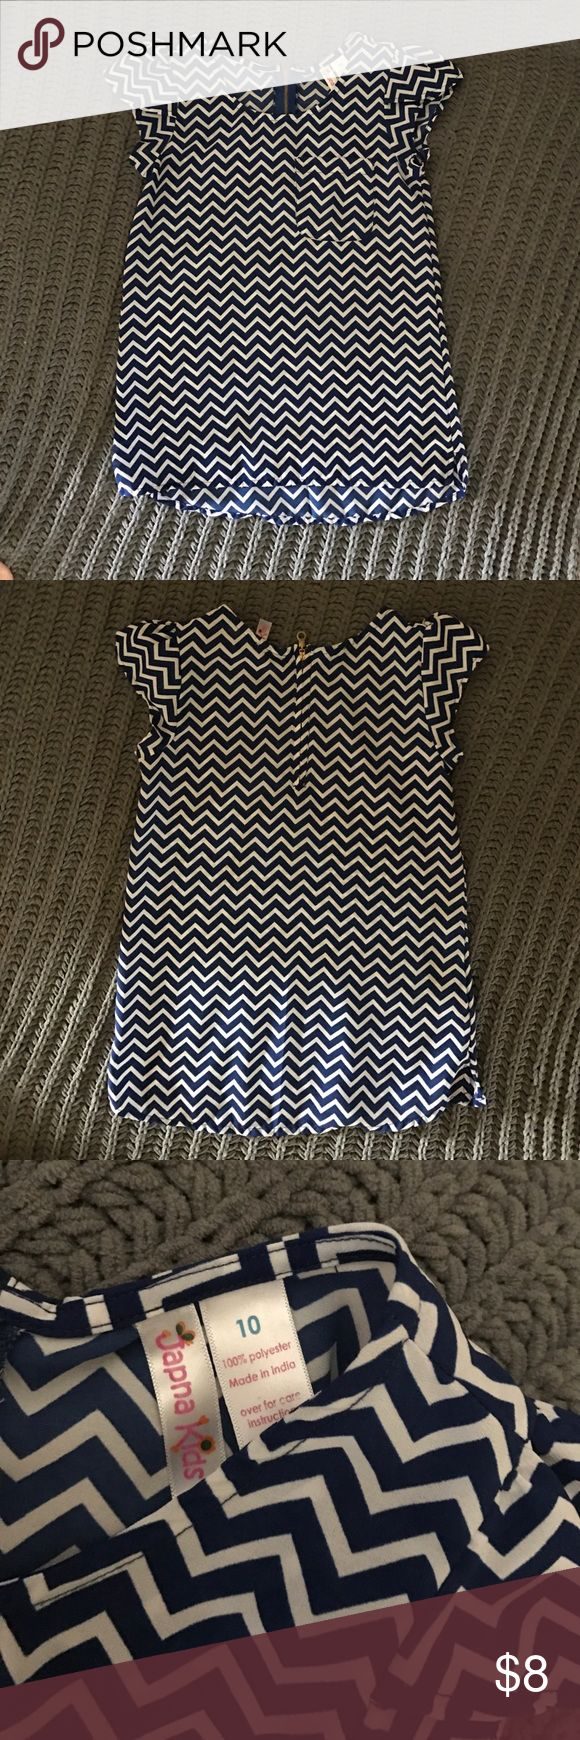 Girls Chevron Blouse Size 10 Girls Chevron Blouse Size 10, zipper in the back Shirts & Tops Blouses